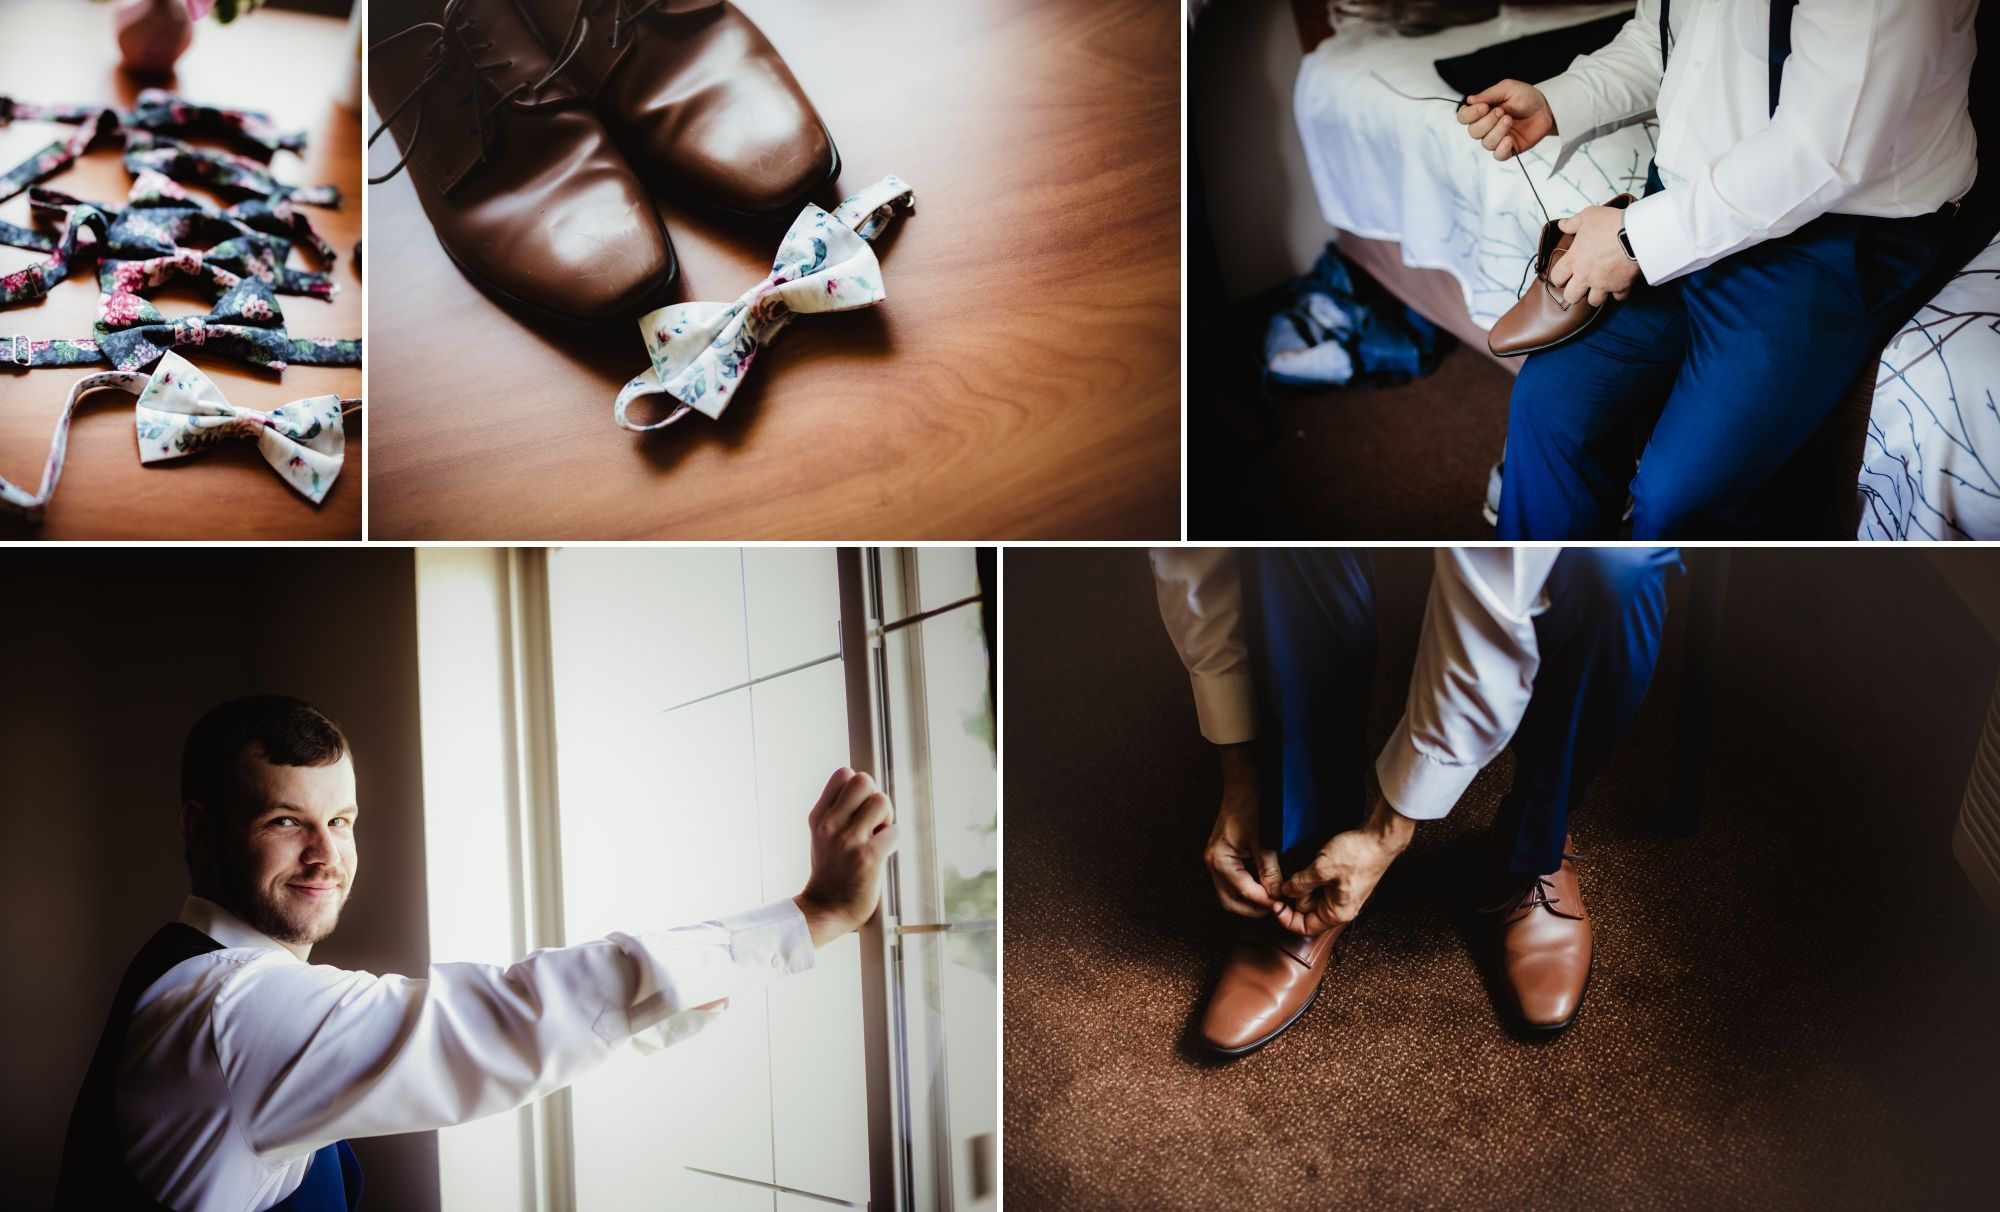 Collage of groom getting ready, tying shoes, bowties.